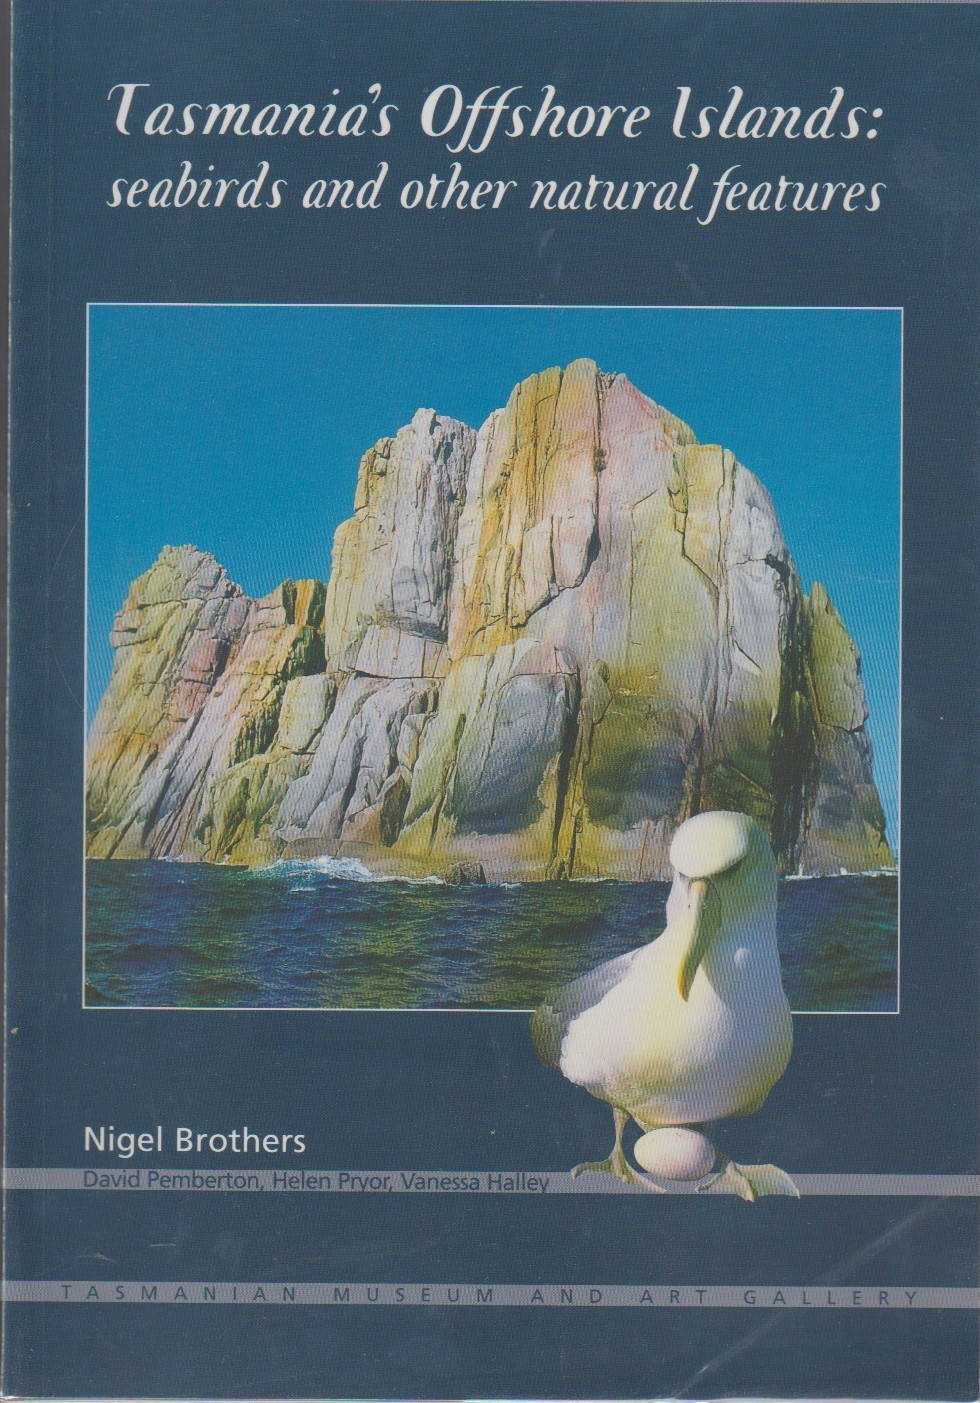 Tasmania's Offshore Islands - seabirds and other natural features